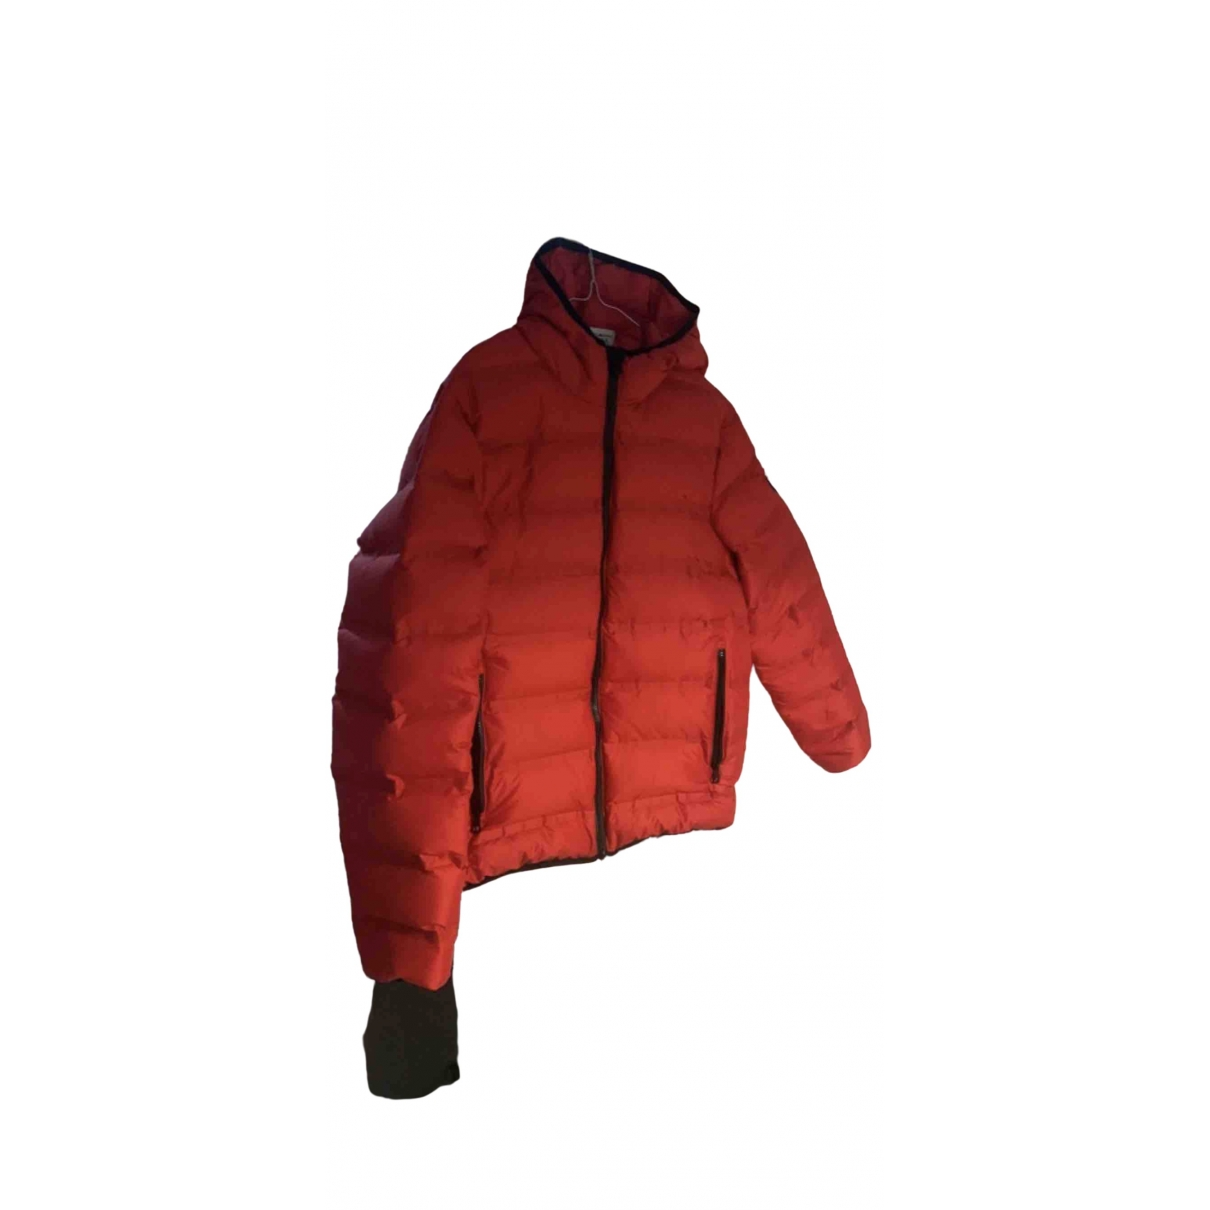 Armani Jeans \N Jacke in  Rot Polyester